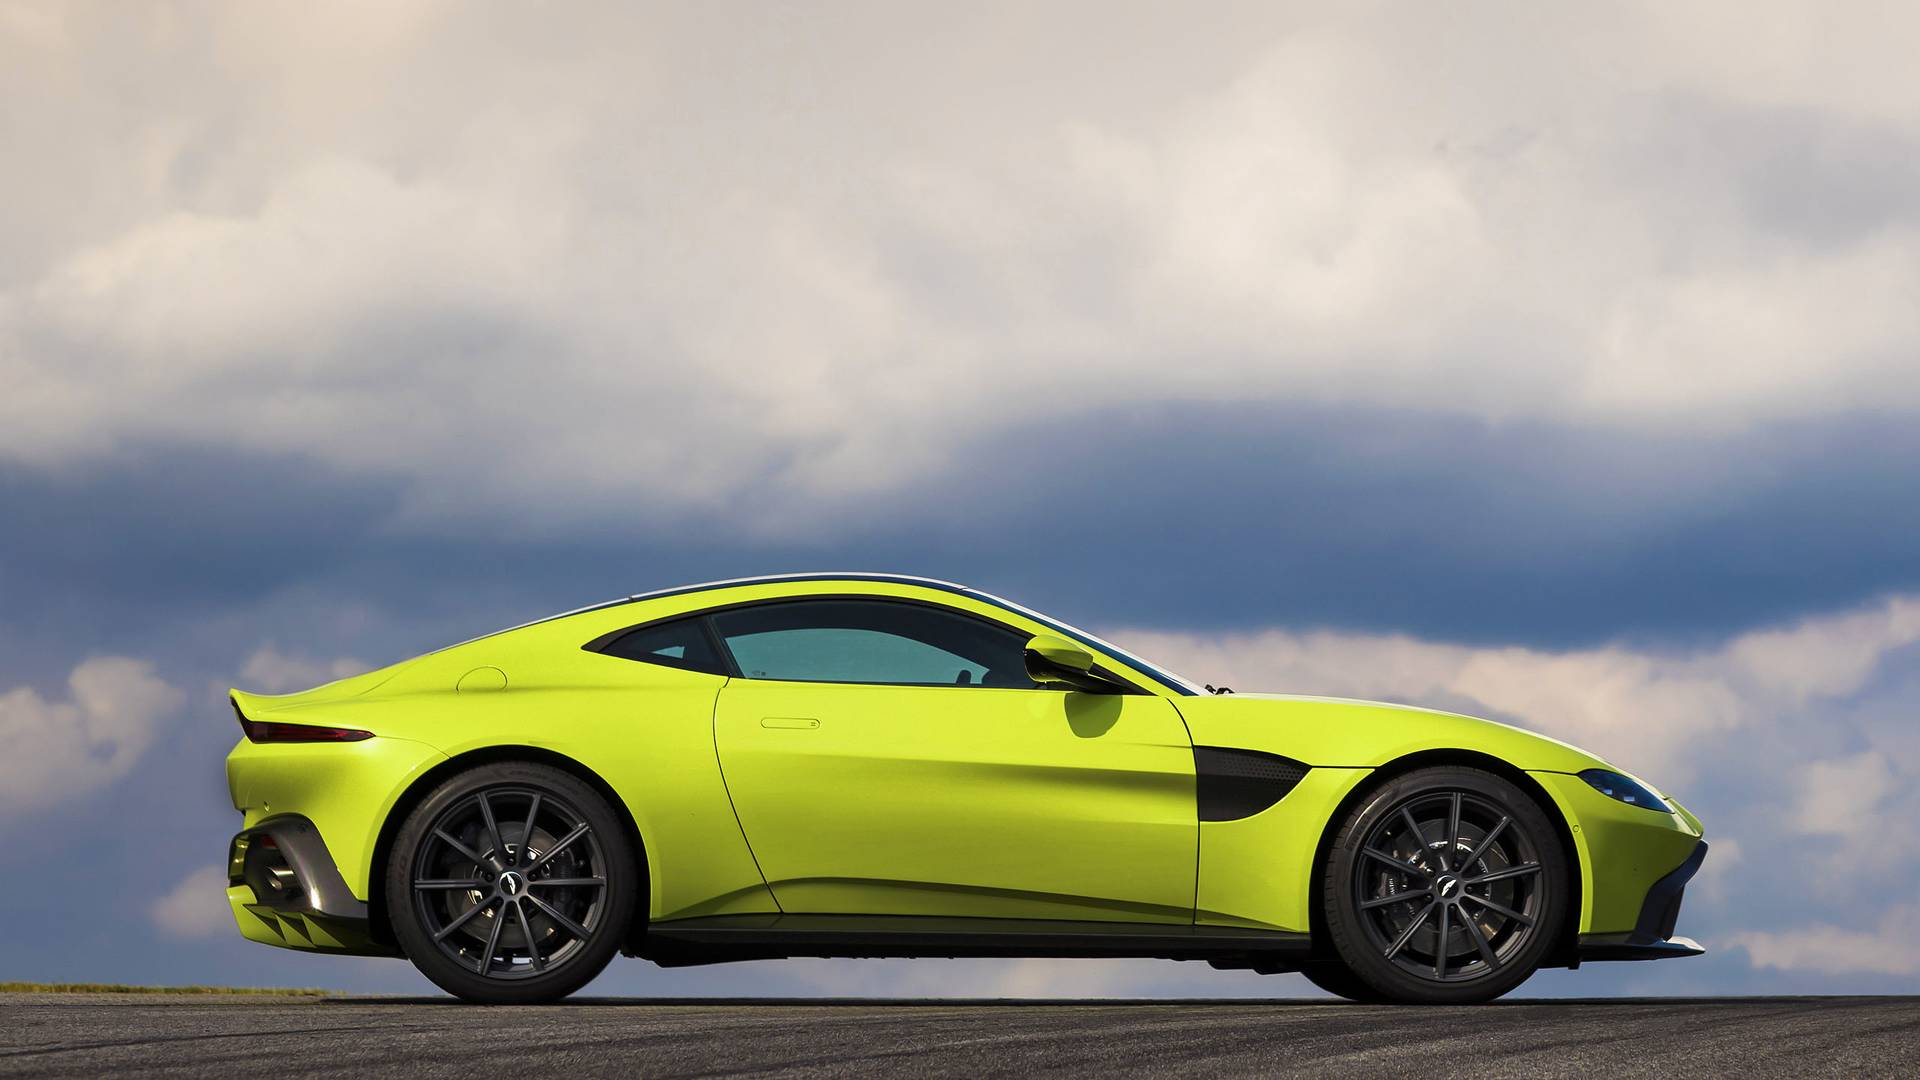 2018 aston martin vantage perfectly bonds looks and performance autodevot. Black Bedroom Furniture Sets. Home Design Ideas